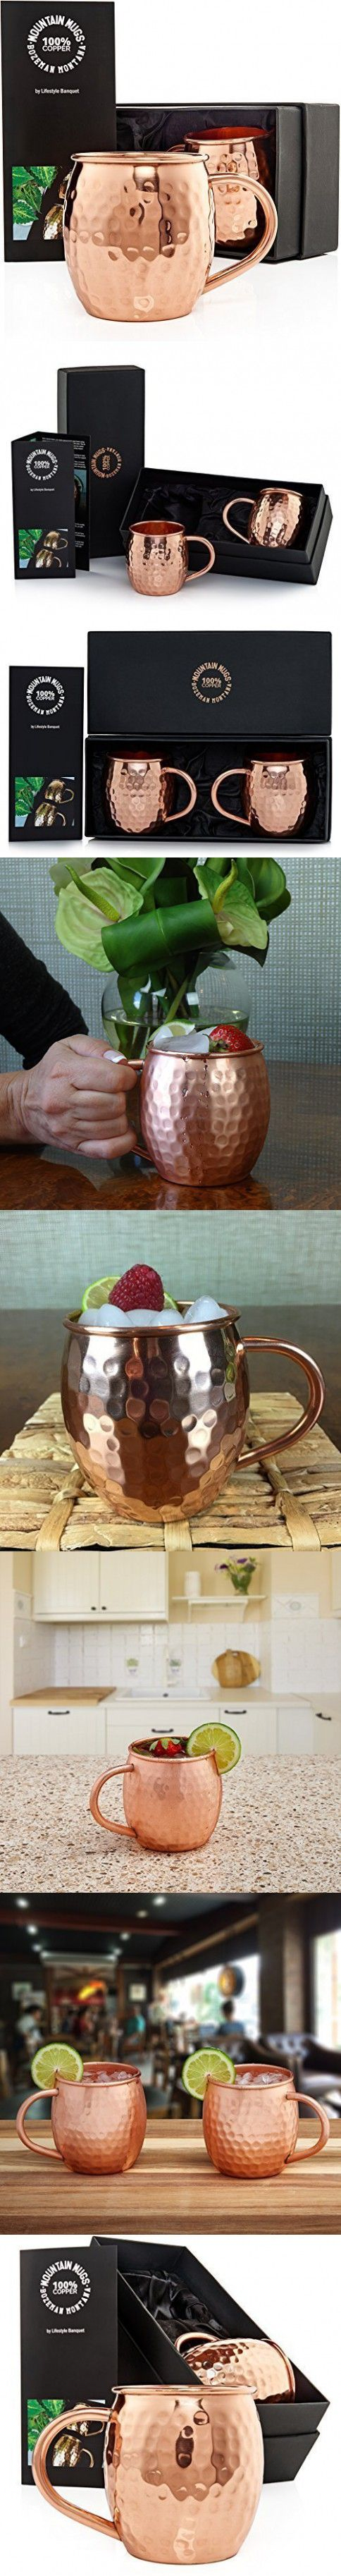 2 Hammered Moscow Mule Mugs in a Gorgeous Gift Box Make Great 7 Year Anniversary Gift Ideas. Each Mug holds 16 Ounces, is Made of Pure Solid Copper with No Nickel Lining and has Welded Handles